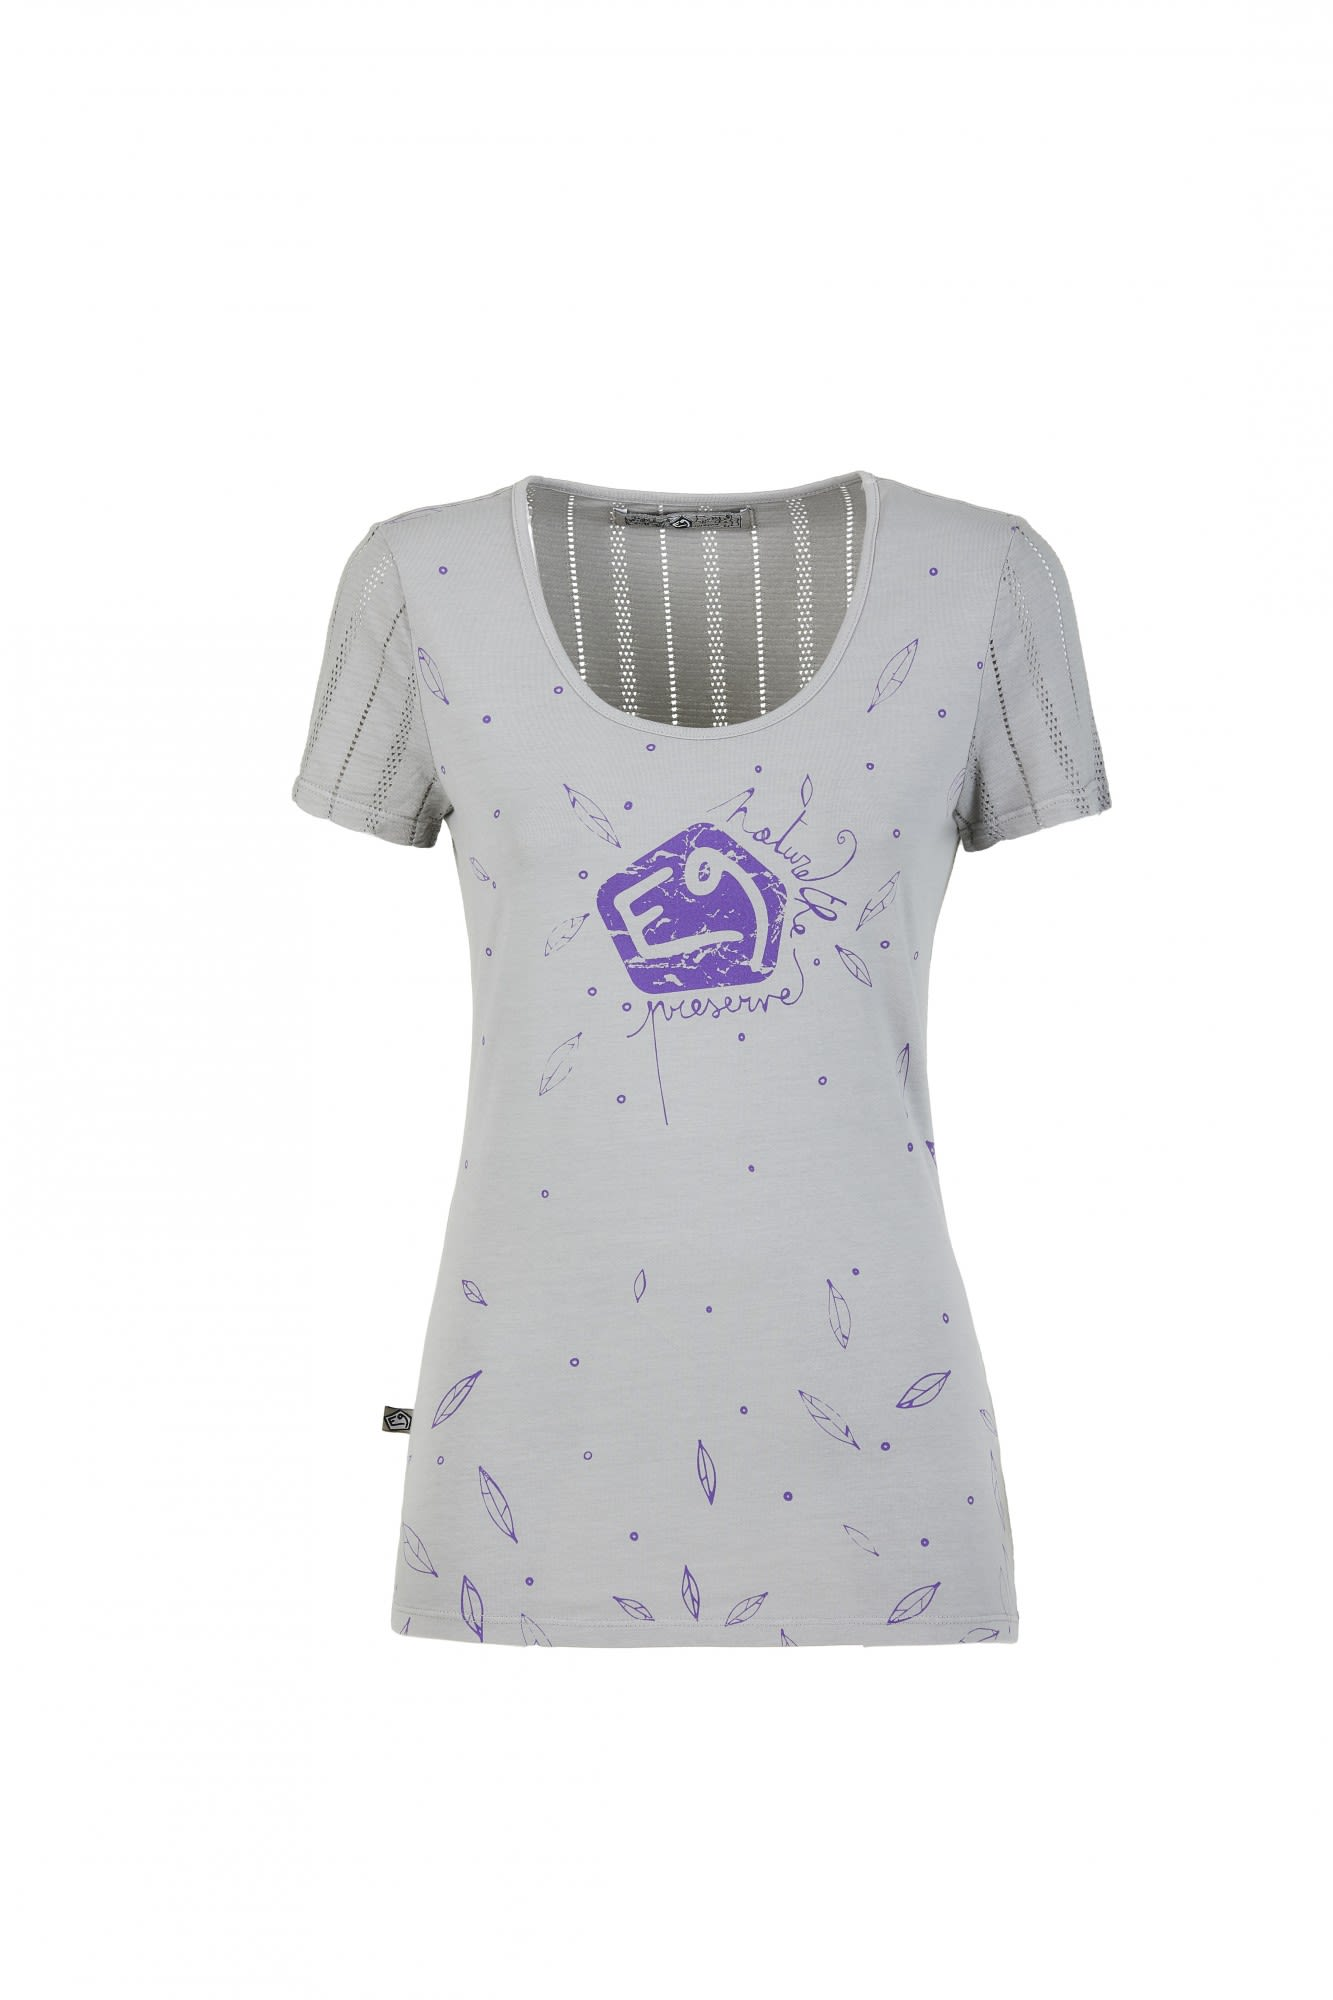 E9 EMY Grau, Female Kurzarm-Shirt, L